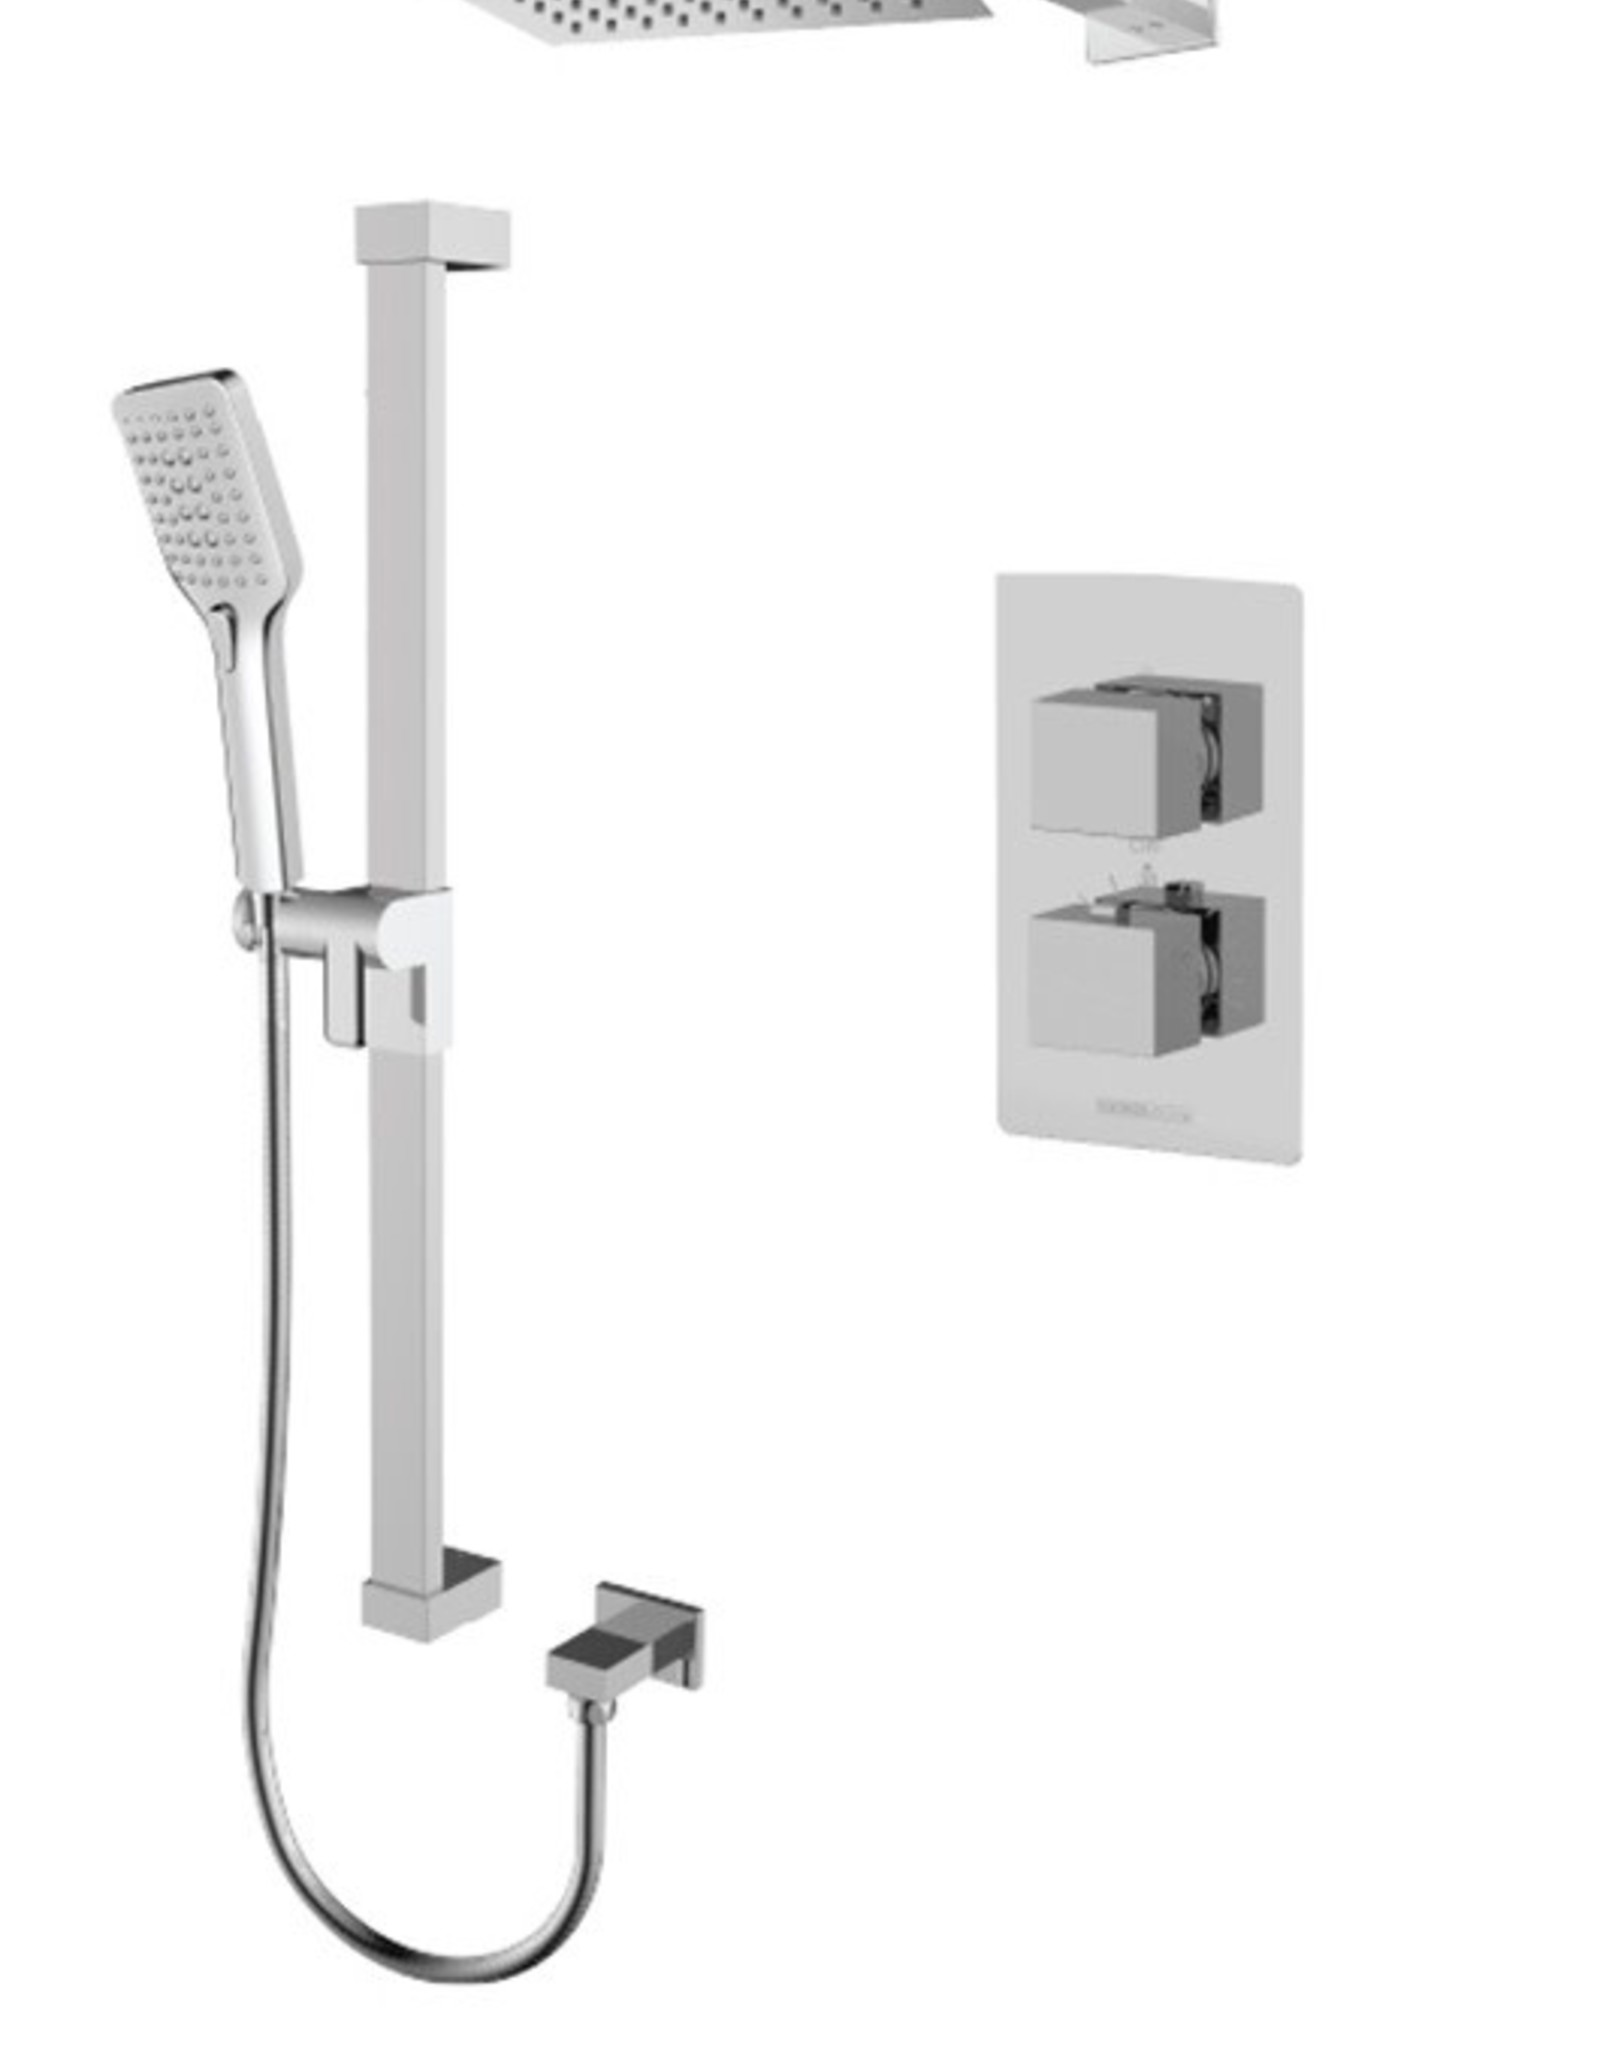 Tenzo Tenzo Slik Thermostatic 2-Way Shower Kit w/ Air Boost Chrome